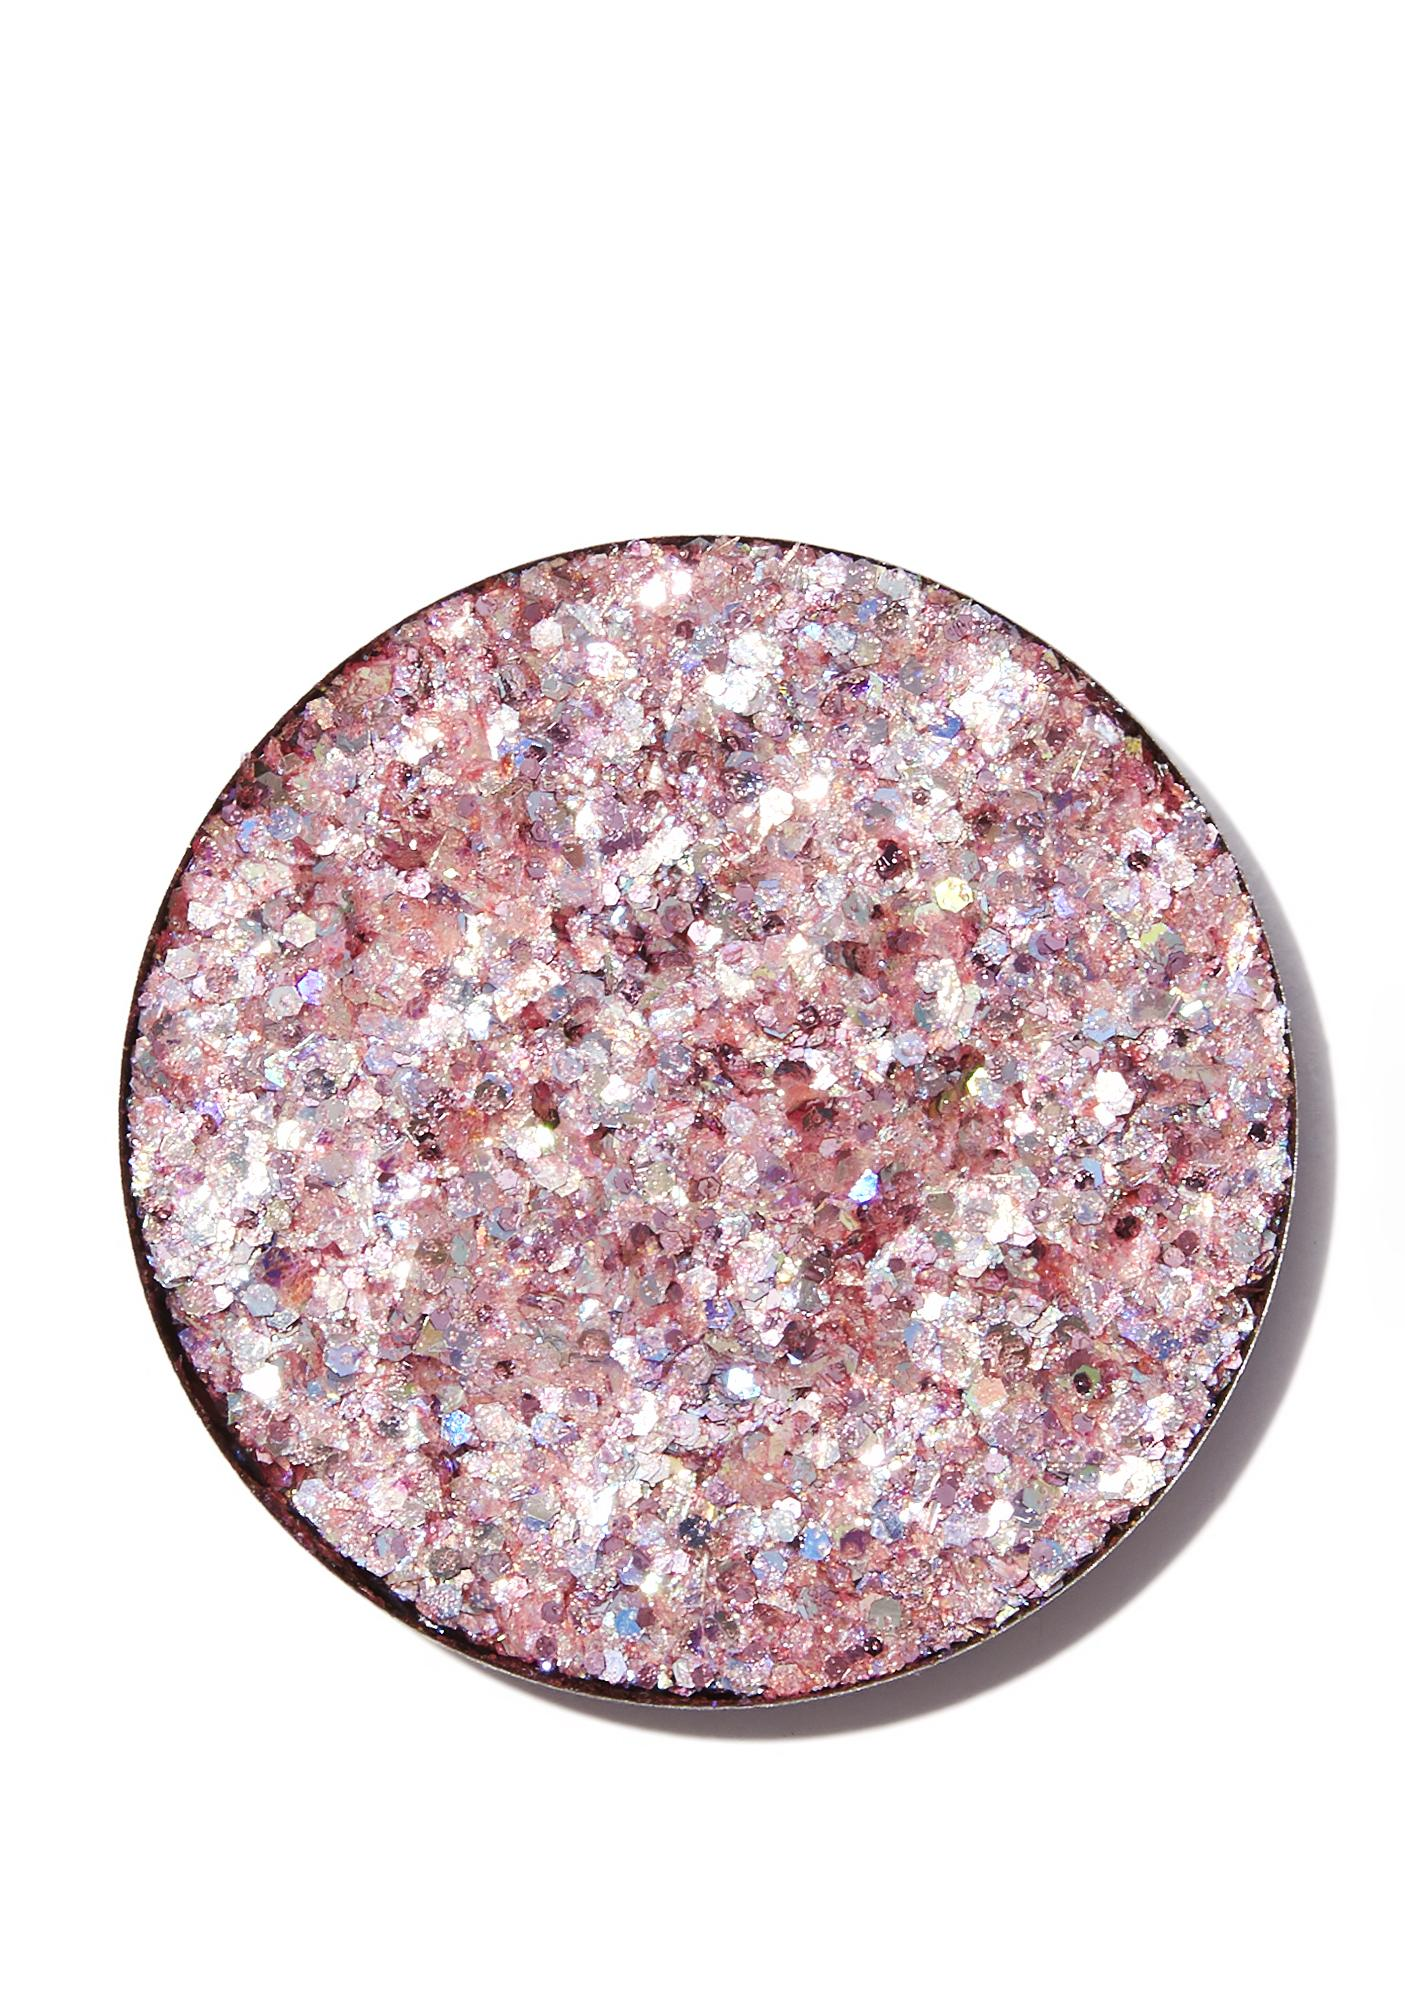 Glitter Injections Girls Just Wanna Have Fun Huge Pressed Glitter